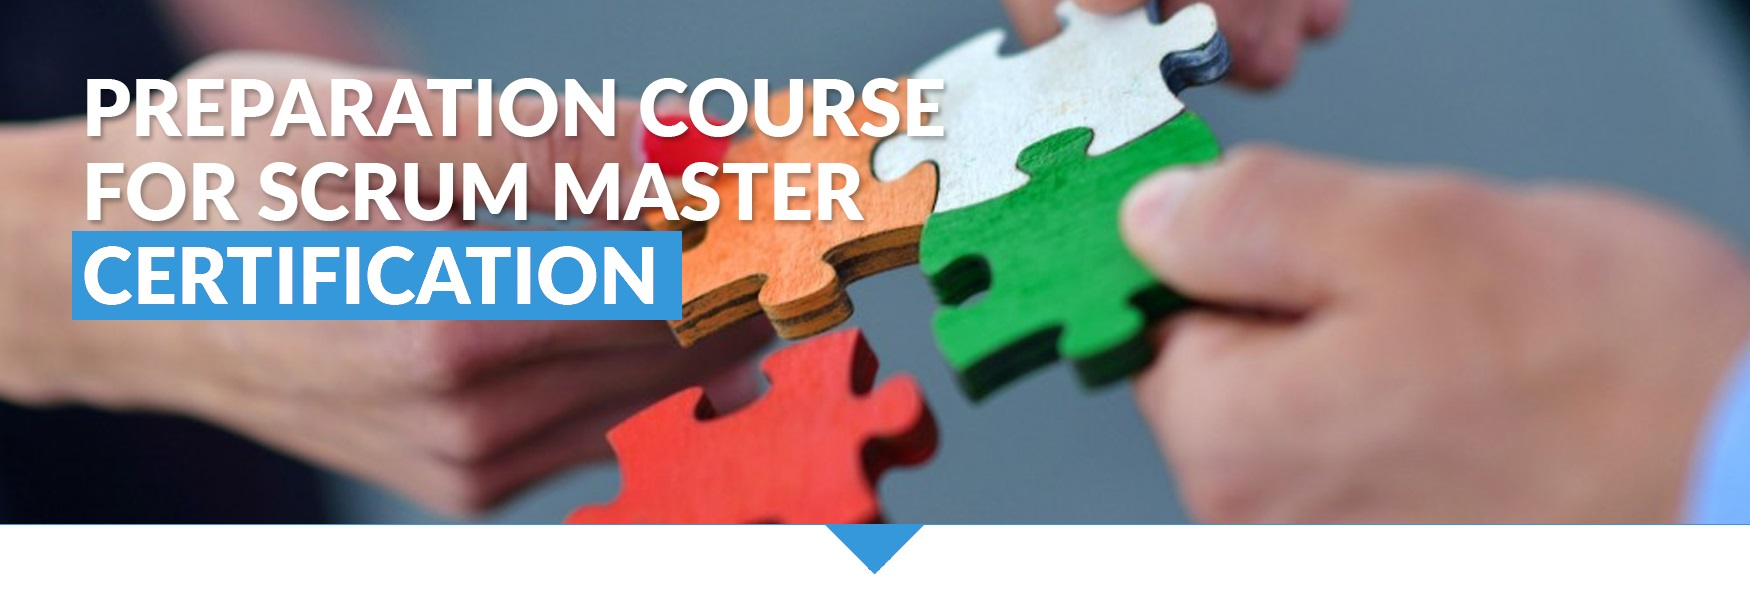 Preparation Course for Scrum Master Certification (March, 2021 )